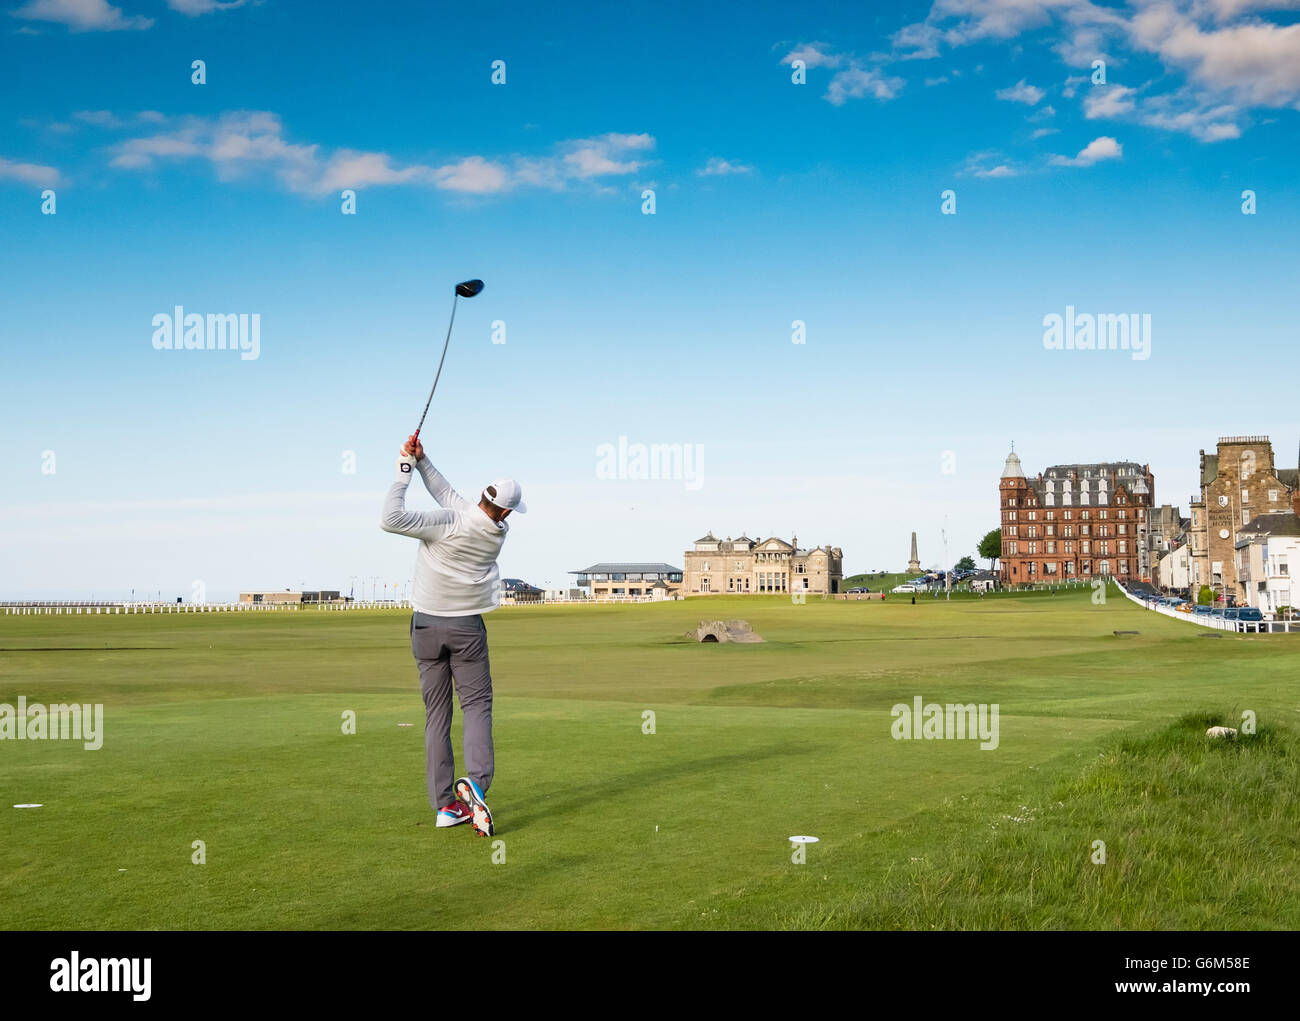 Golfer teeing off on 18th hole at Old Course in St Andrews in Fife , Scotland, United Kingdom - Stock Image